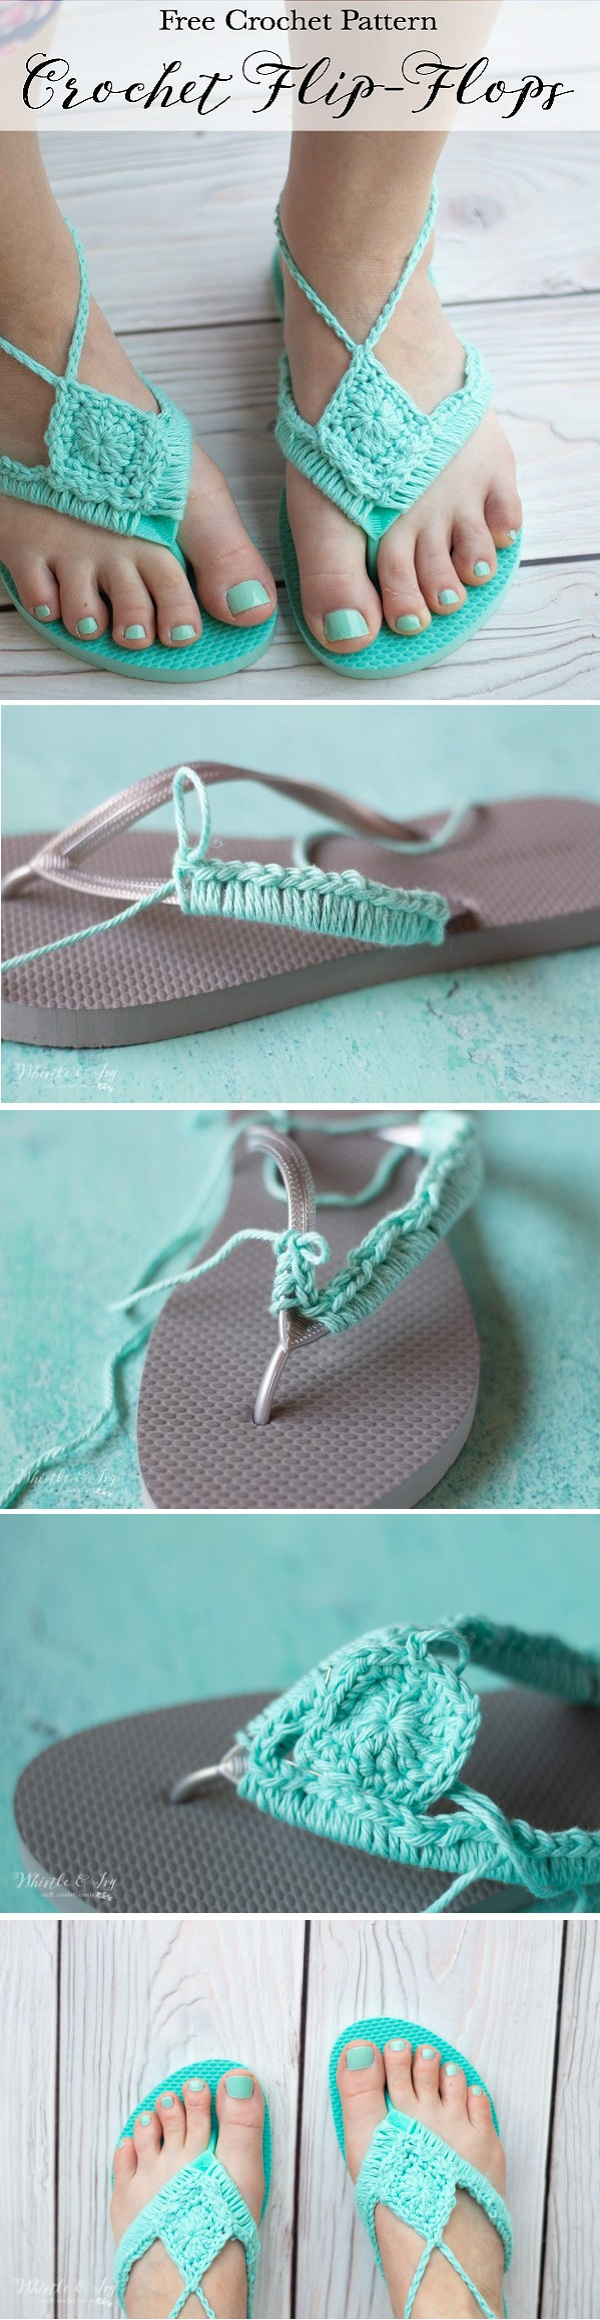 Crochet Flip Flops Upcycle - Turn your cheap foam flip flops into cute boho crochet sandals with this easy crochet hack.